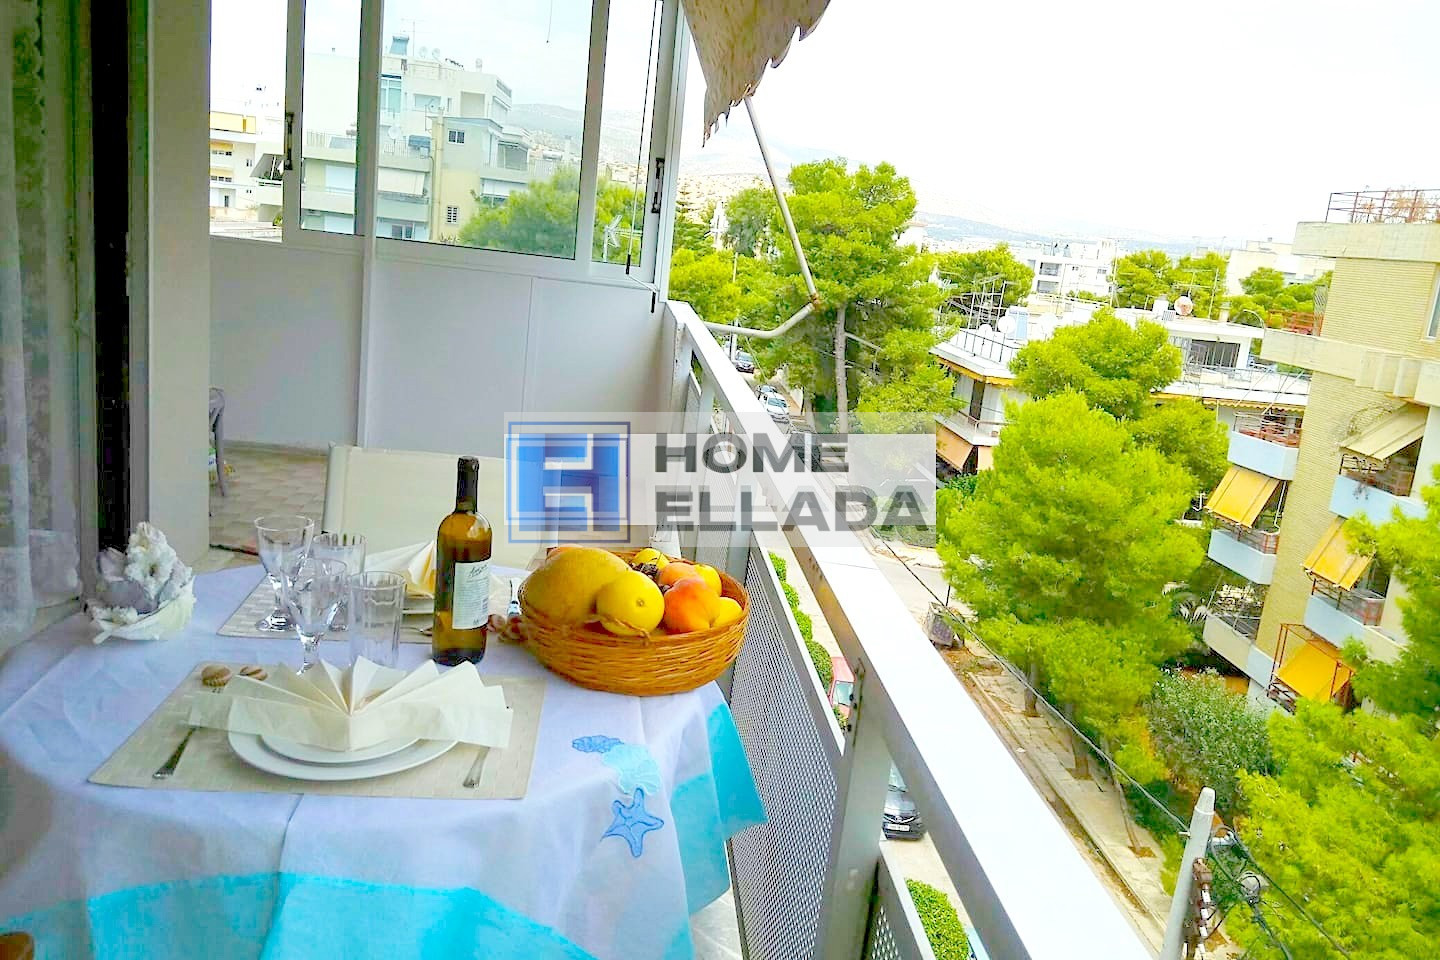 Varkiza - (Athens) daily rental apartments in Greece